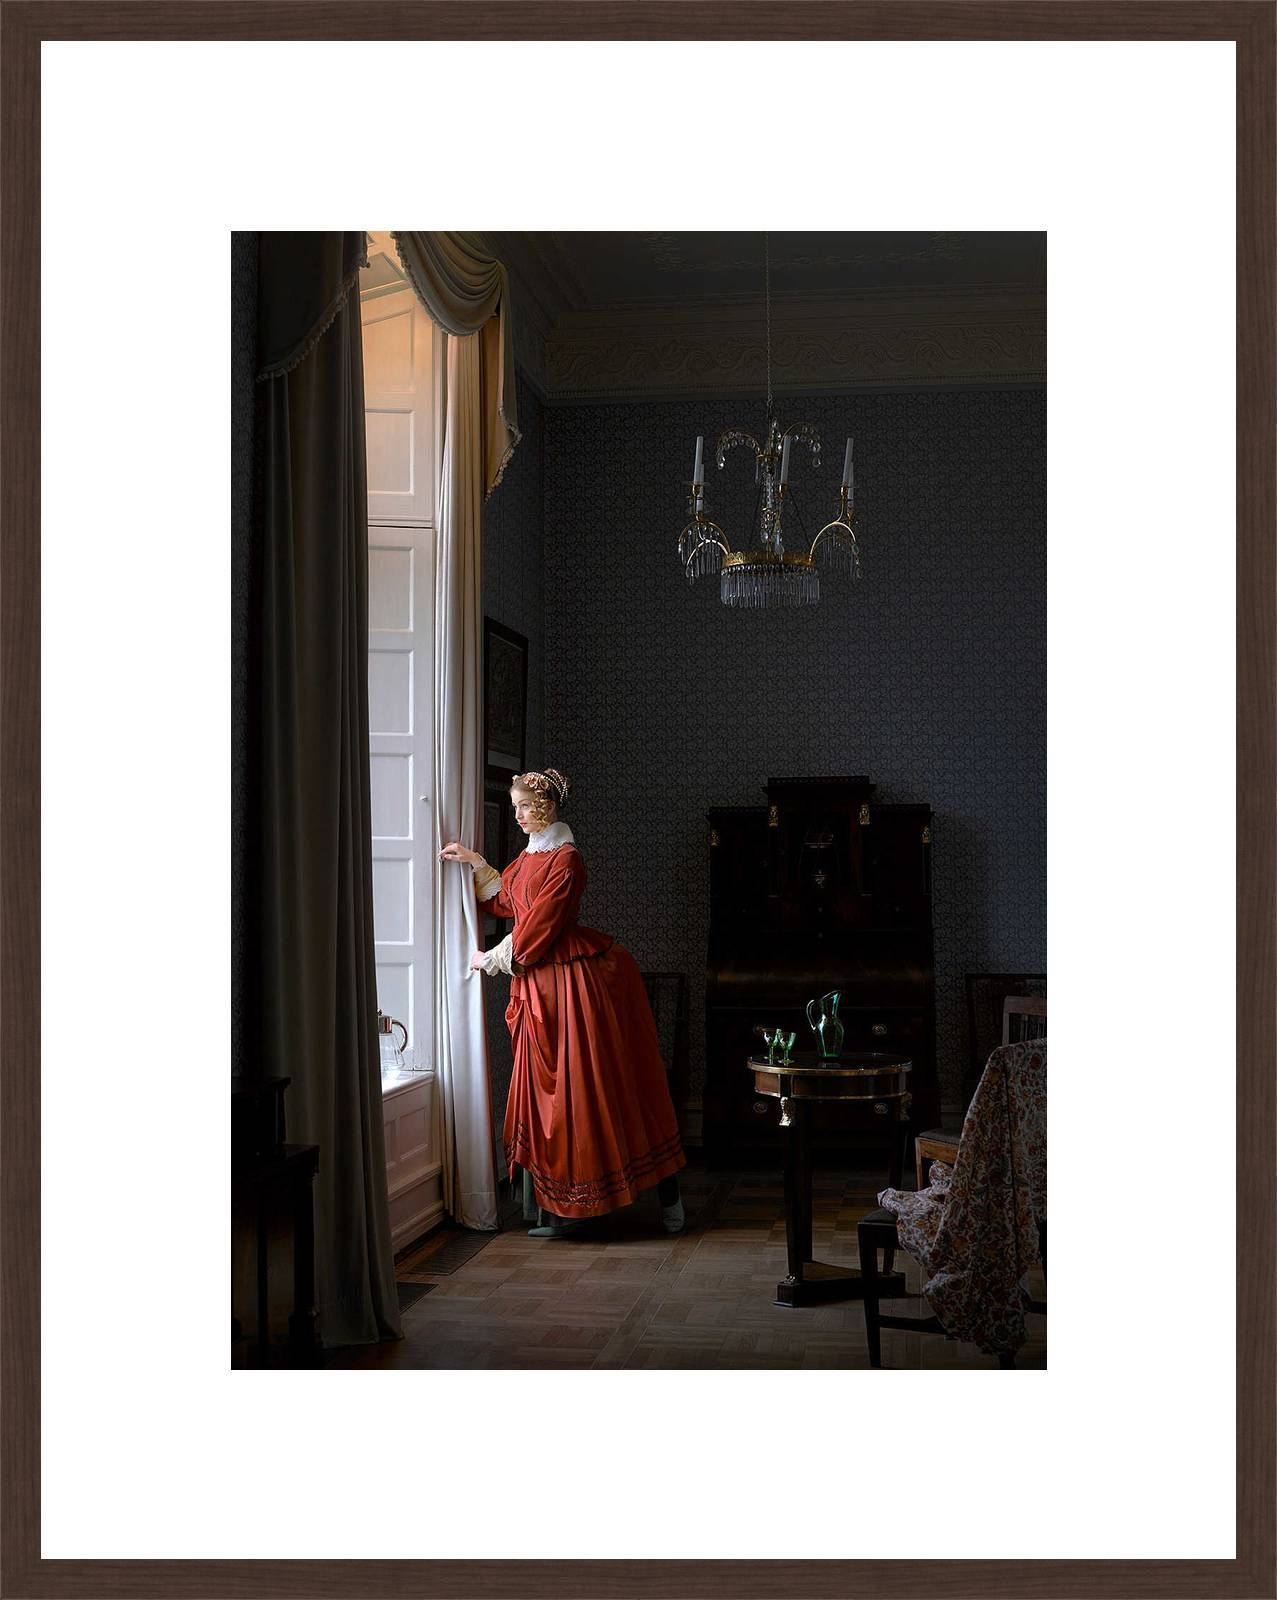 Girl at the window - Mark Seelen - Bilder, Fotografie, Foto Kunst online bei LUMAS